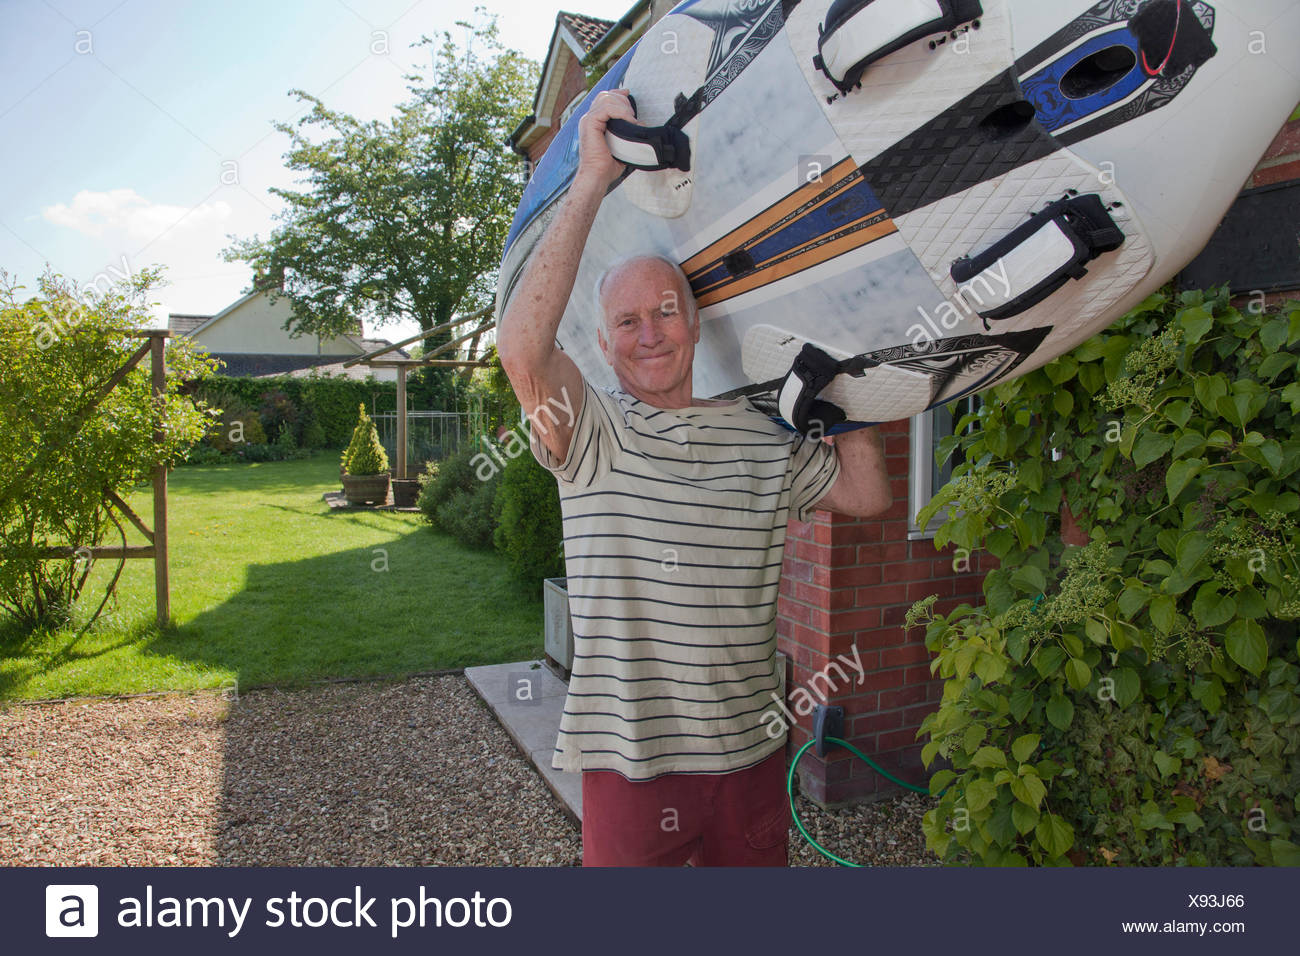 Senior man carrying surfboard - Stock Image